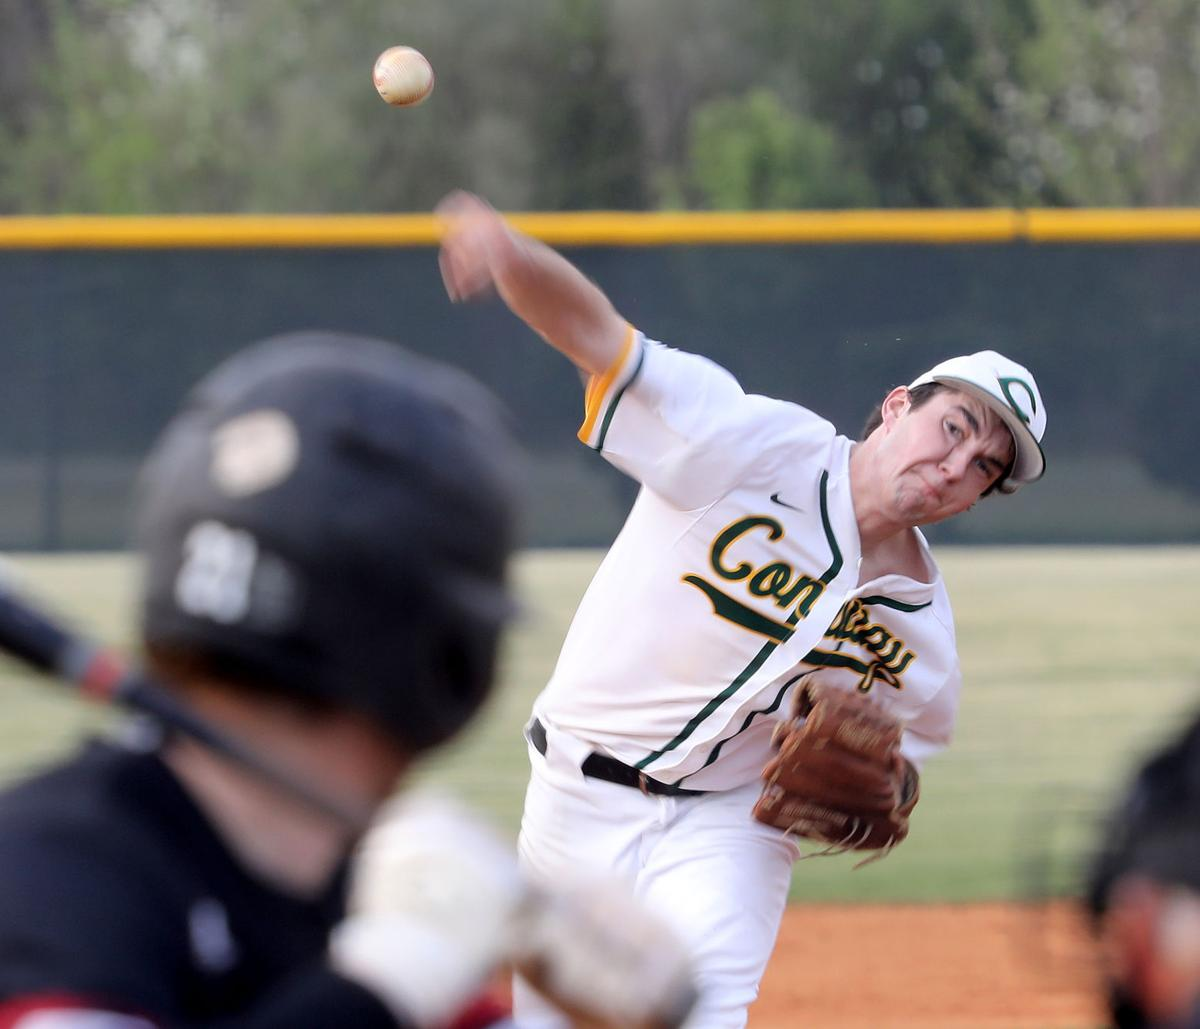 Conway pitcher drawing attention as potential pro vs  CCU